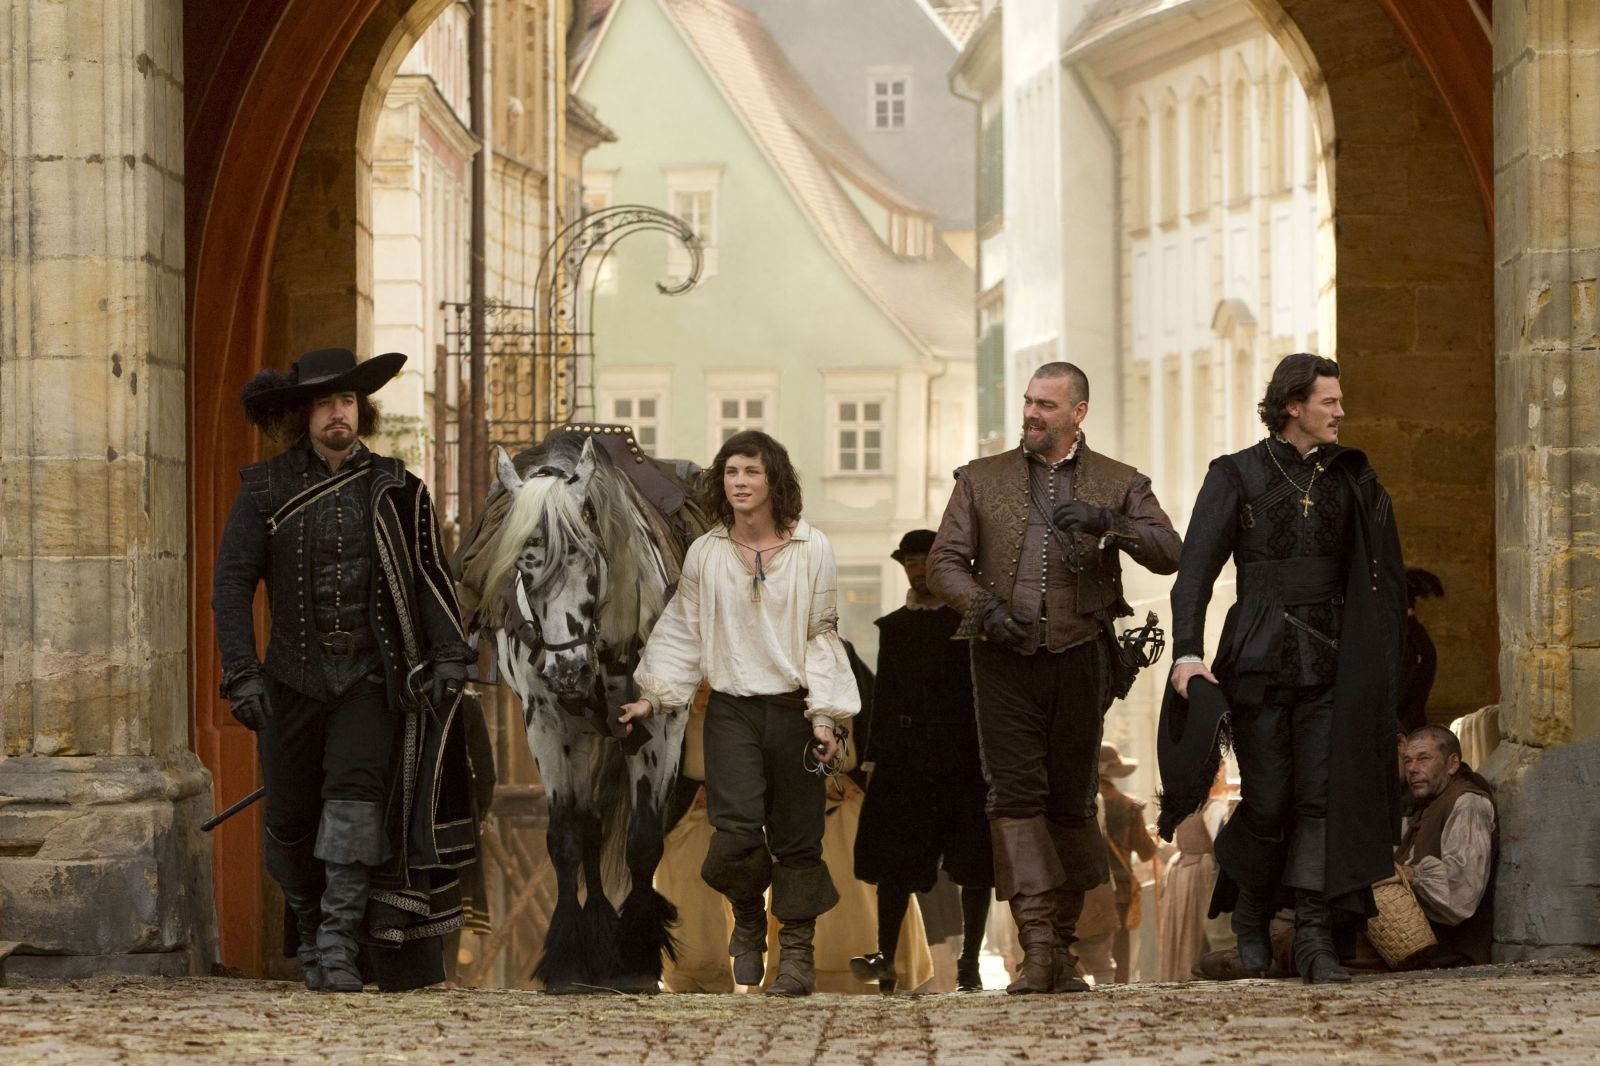 the 3 musketeers The names of the three musketeers are athos, porthos and aramis the main character of the novel, however, is d'artagnan, a poor, young adventurer who leaves his home to join the famous musketeers of the guard.